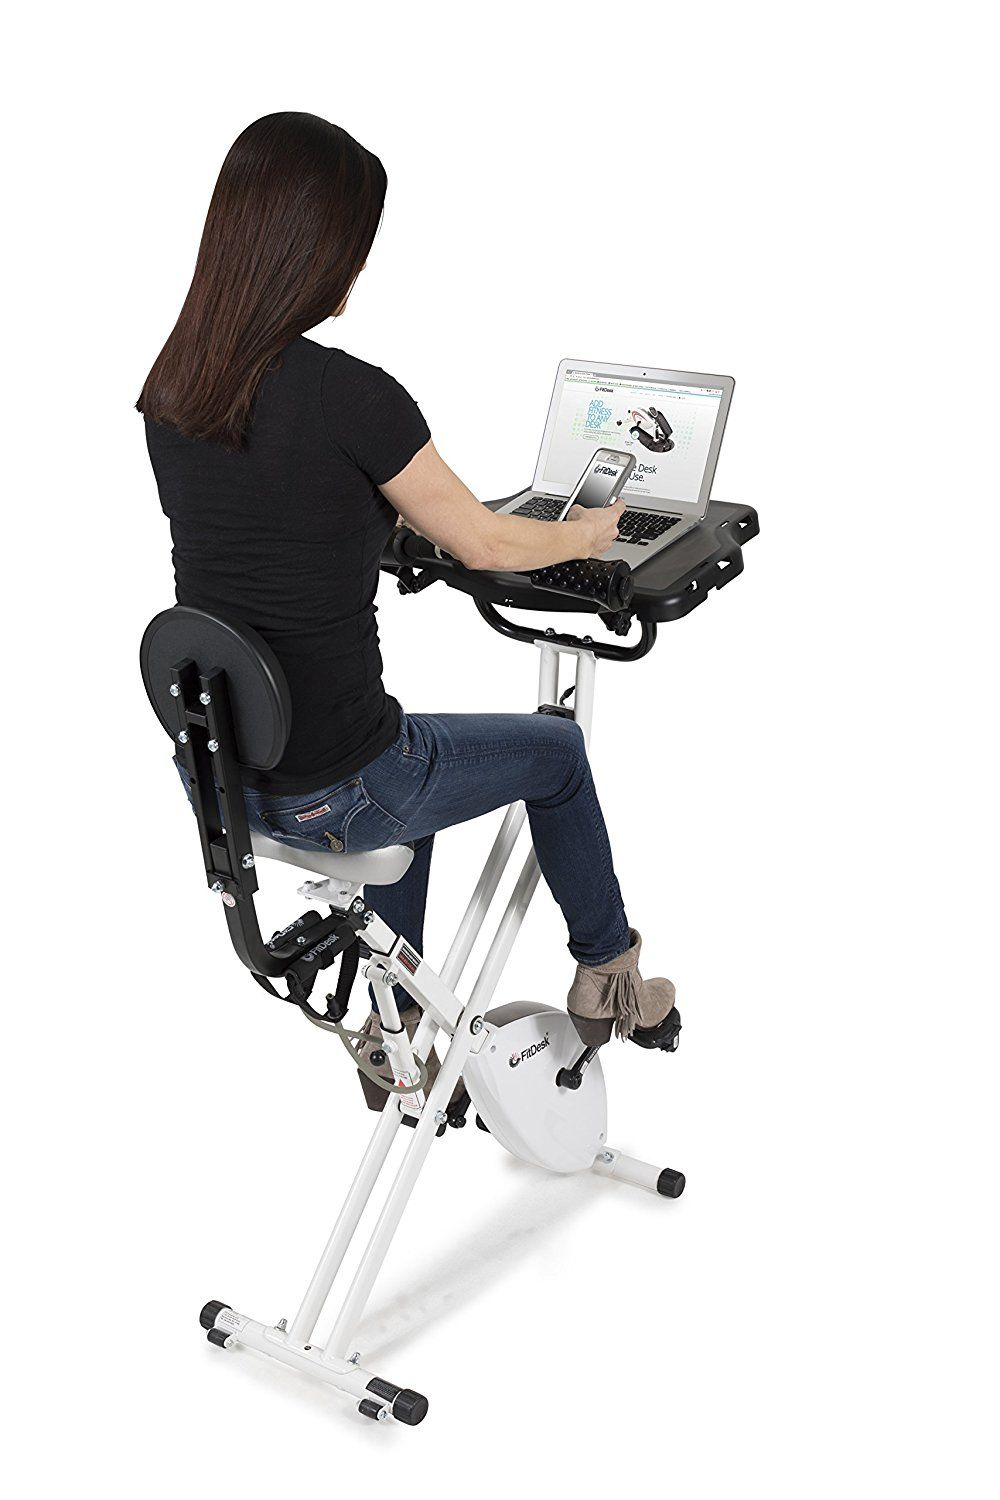 This Fitdesk V3 0 Bike Desk Comes With A Work Desk And An